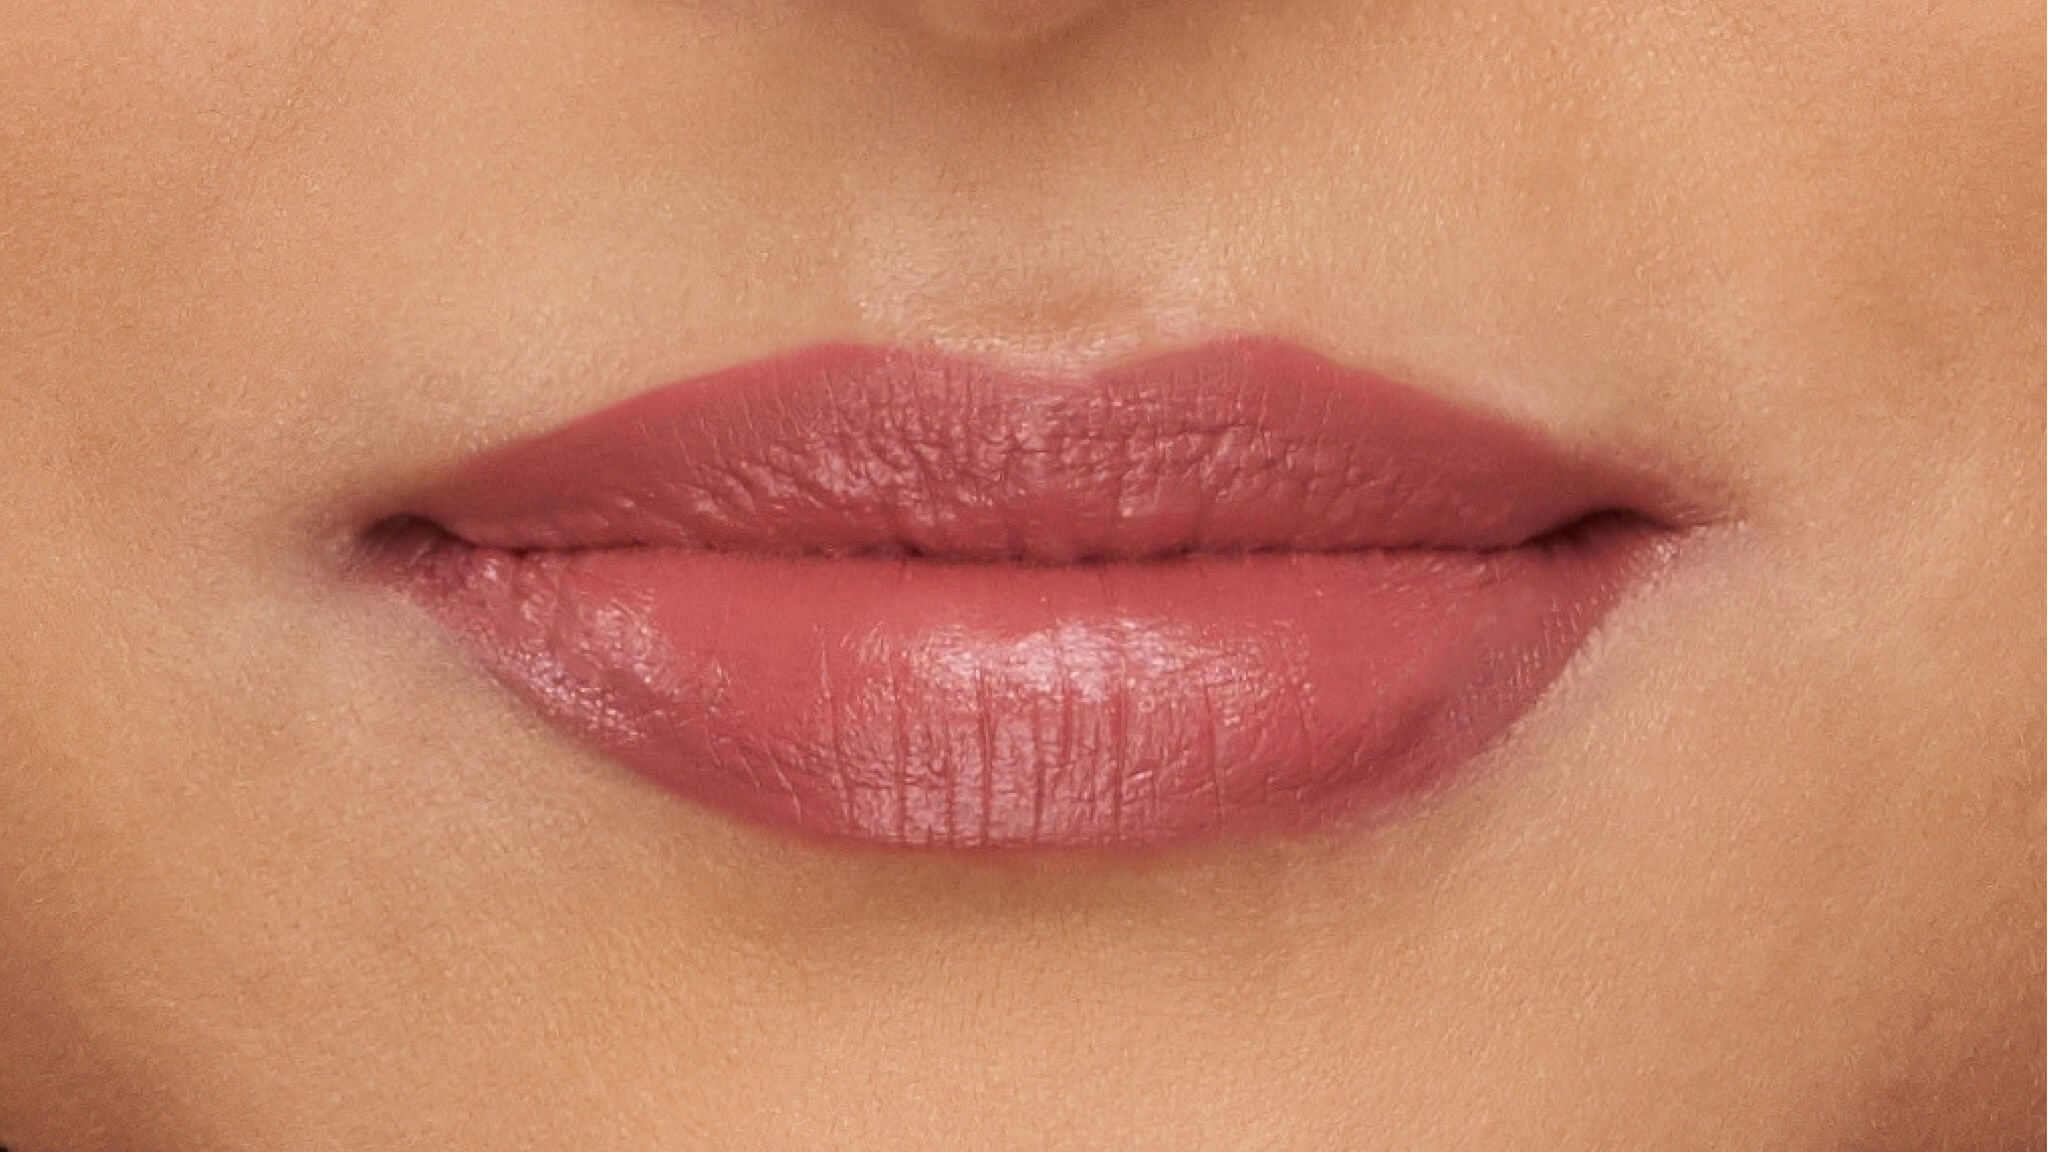 Second Lip Color - Berry Mysterious